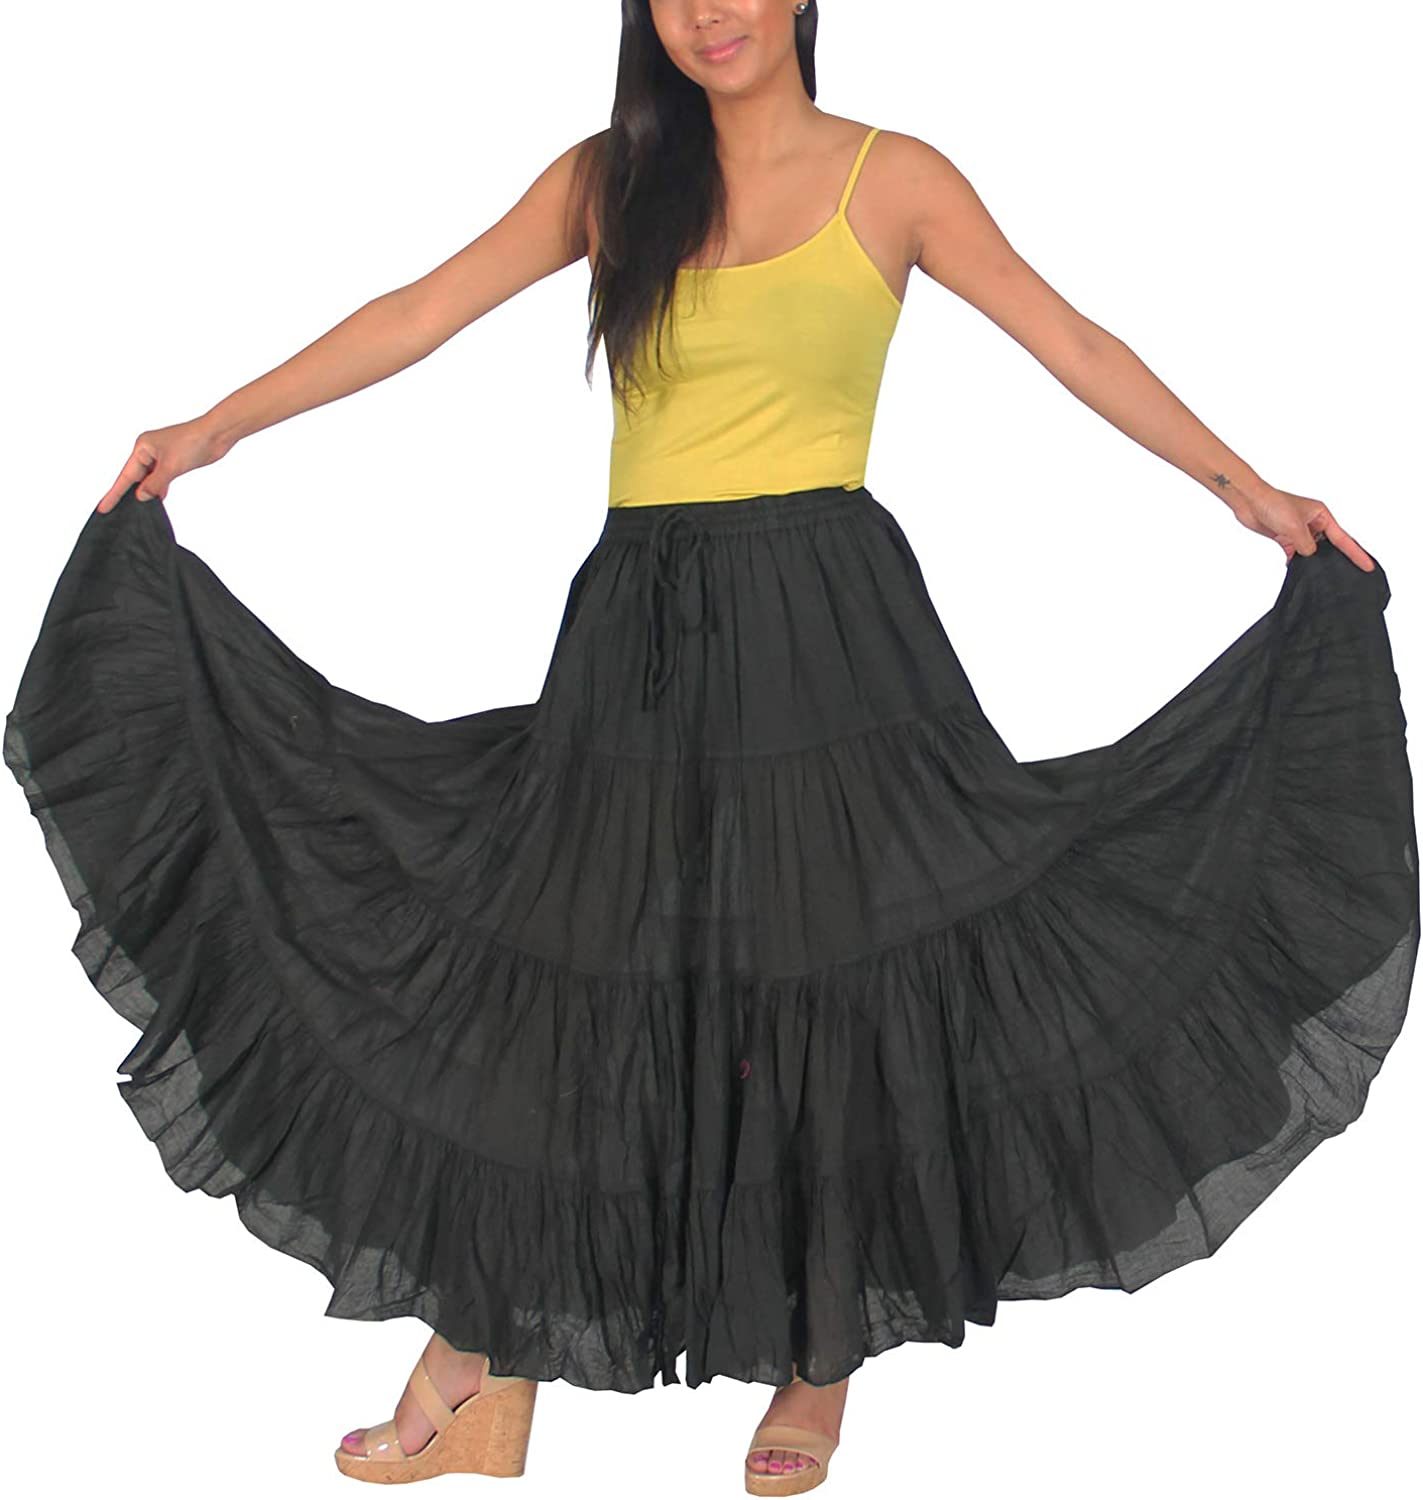 KayJayStyles Women's Tribal Gypsy 12 Yard Solid Color Cotton Dancing Skirt